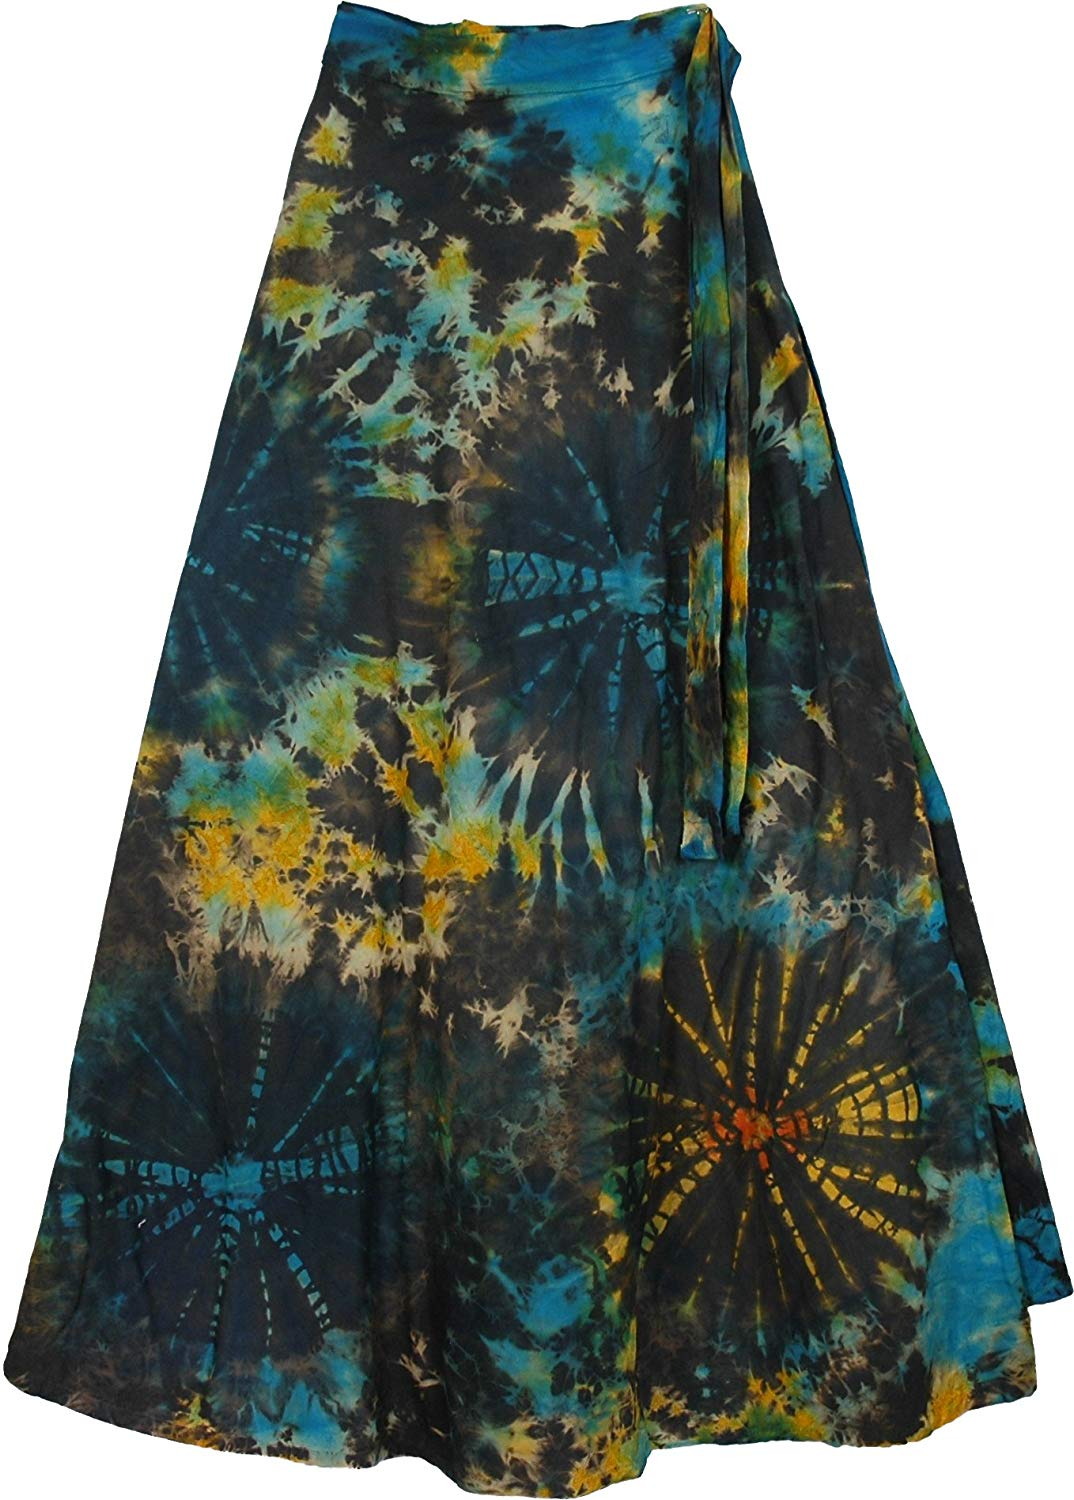 TLB Roma Bohemian Wrap Around Long Skirt - Black Tie Dye L: 37.5